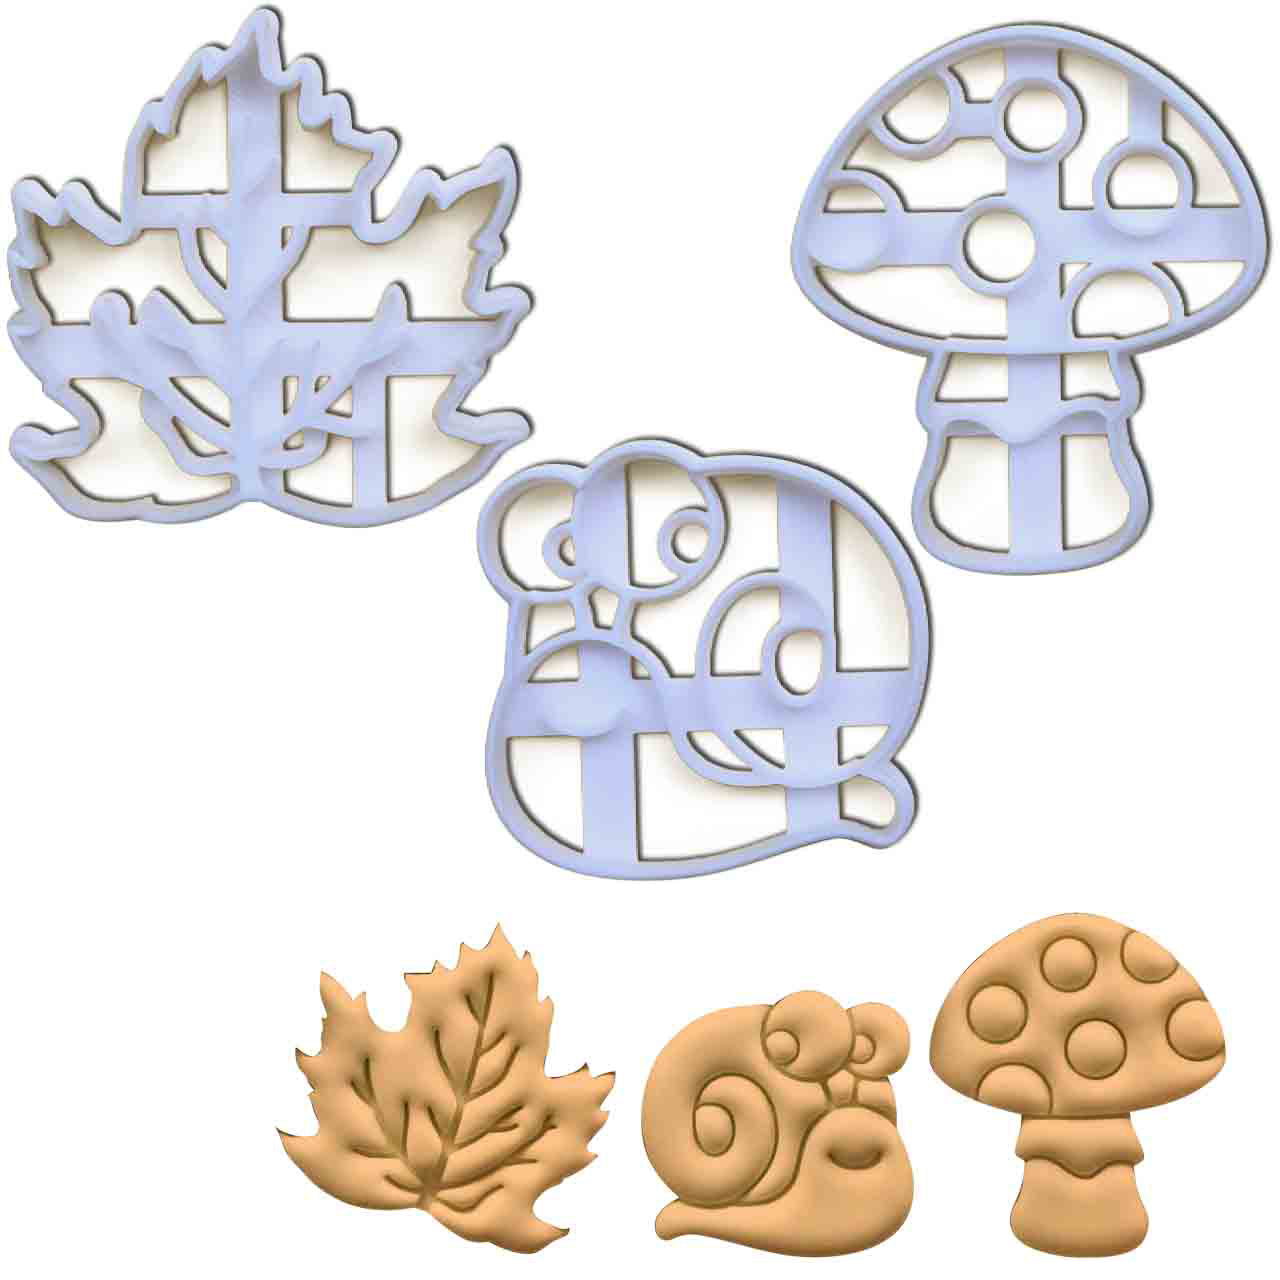 set of 3 autumn themed cookie cutters - snail, maple leaf, and mushroom